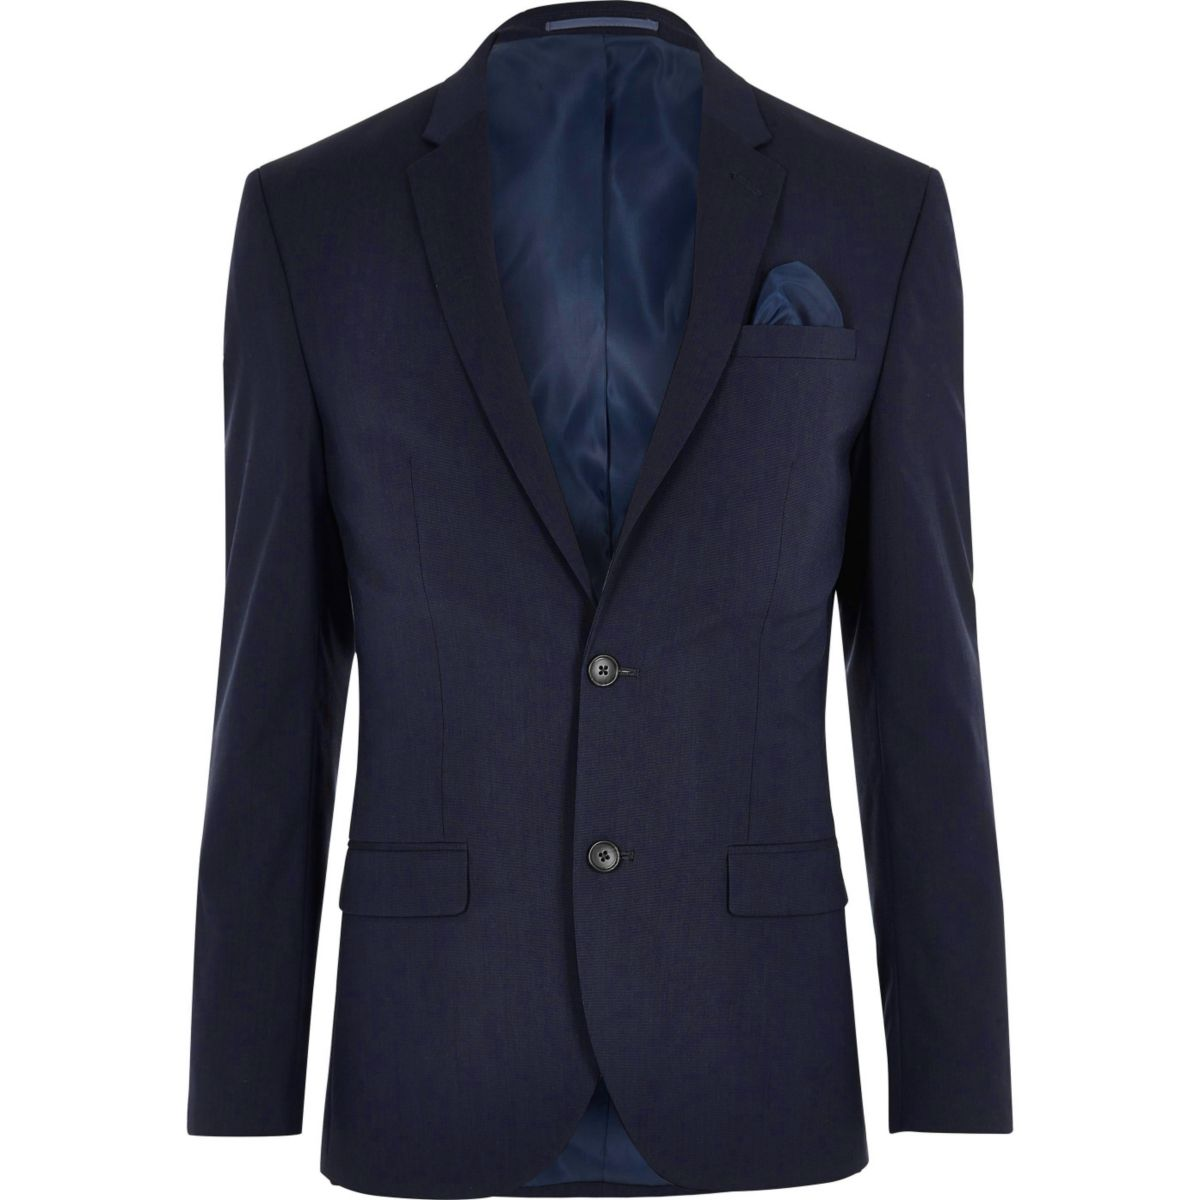 Dark blue stretch slim fit suit jacket - Suit Jackets - Suits - men